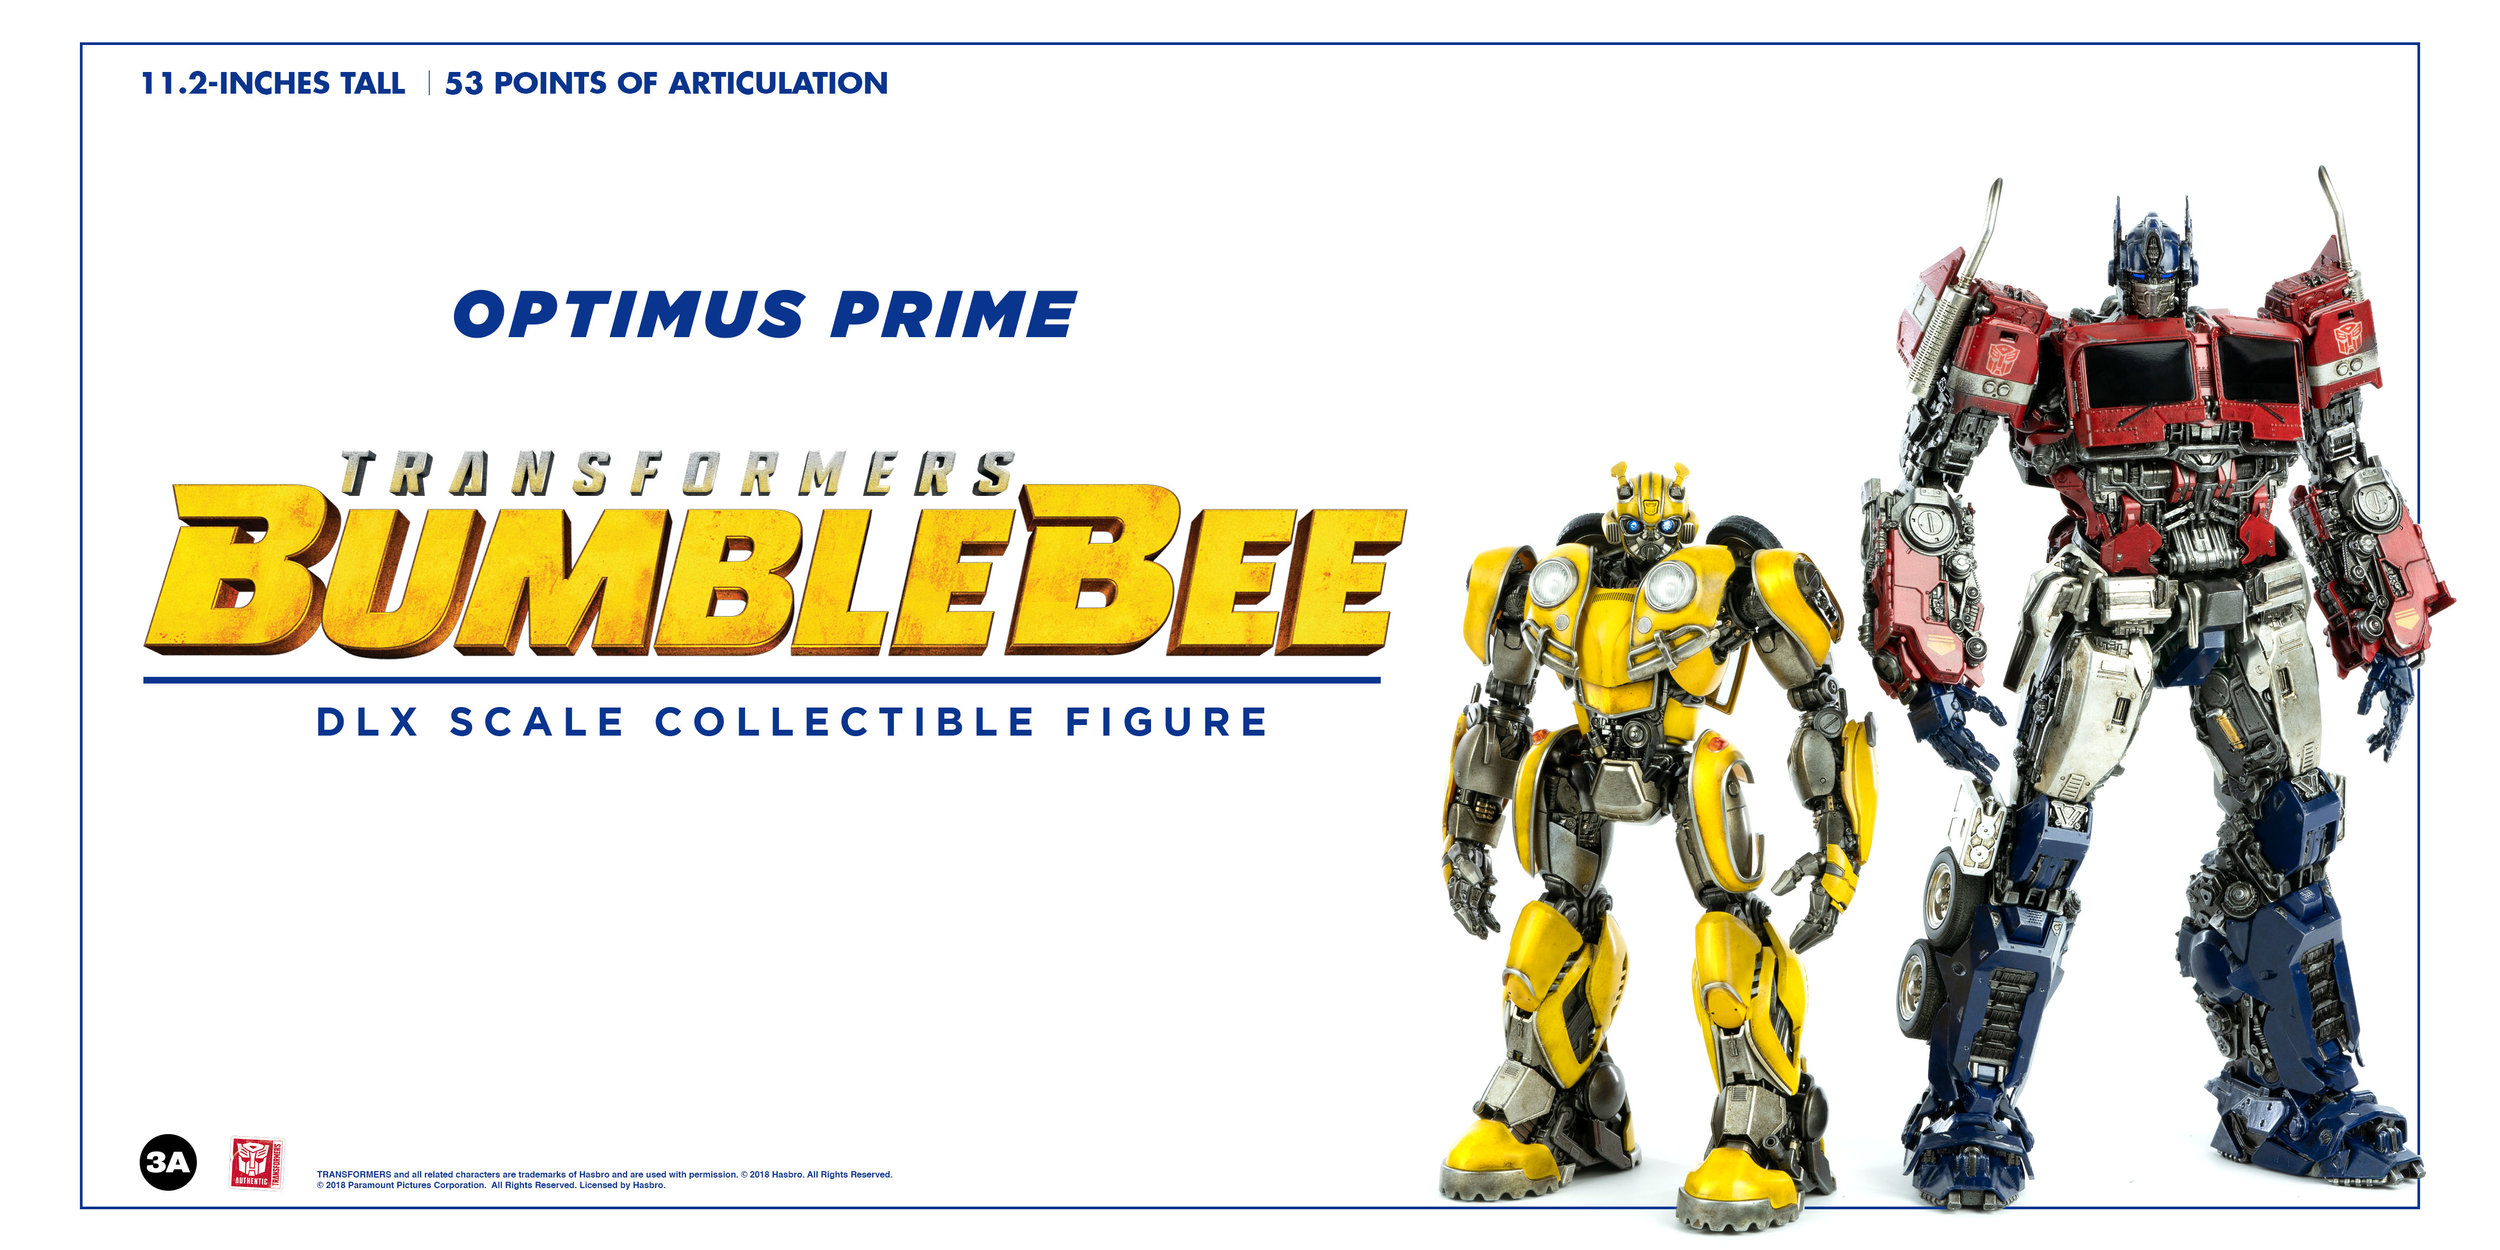 Transformers Bumblebee DLX and Premium Scale Collectible Figures  - Page 2 OP_DLX_ENG_6047_wide